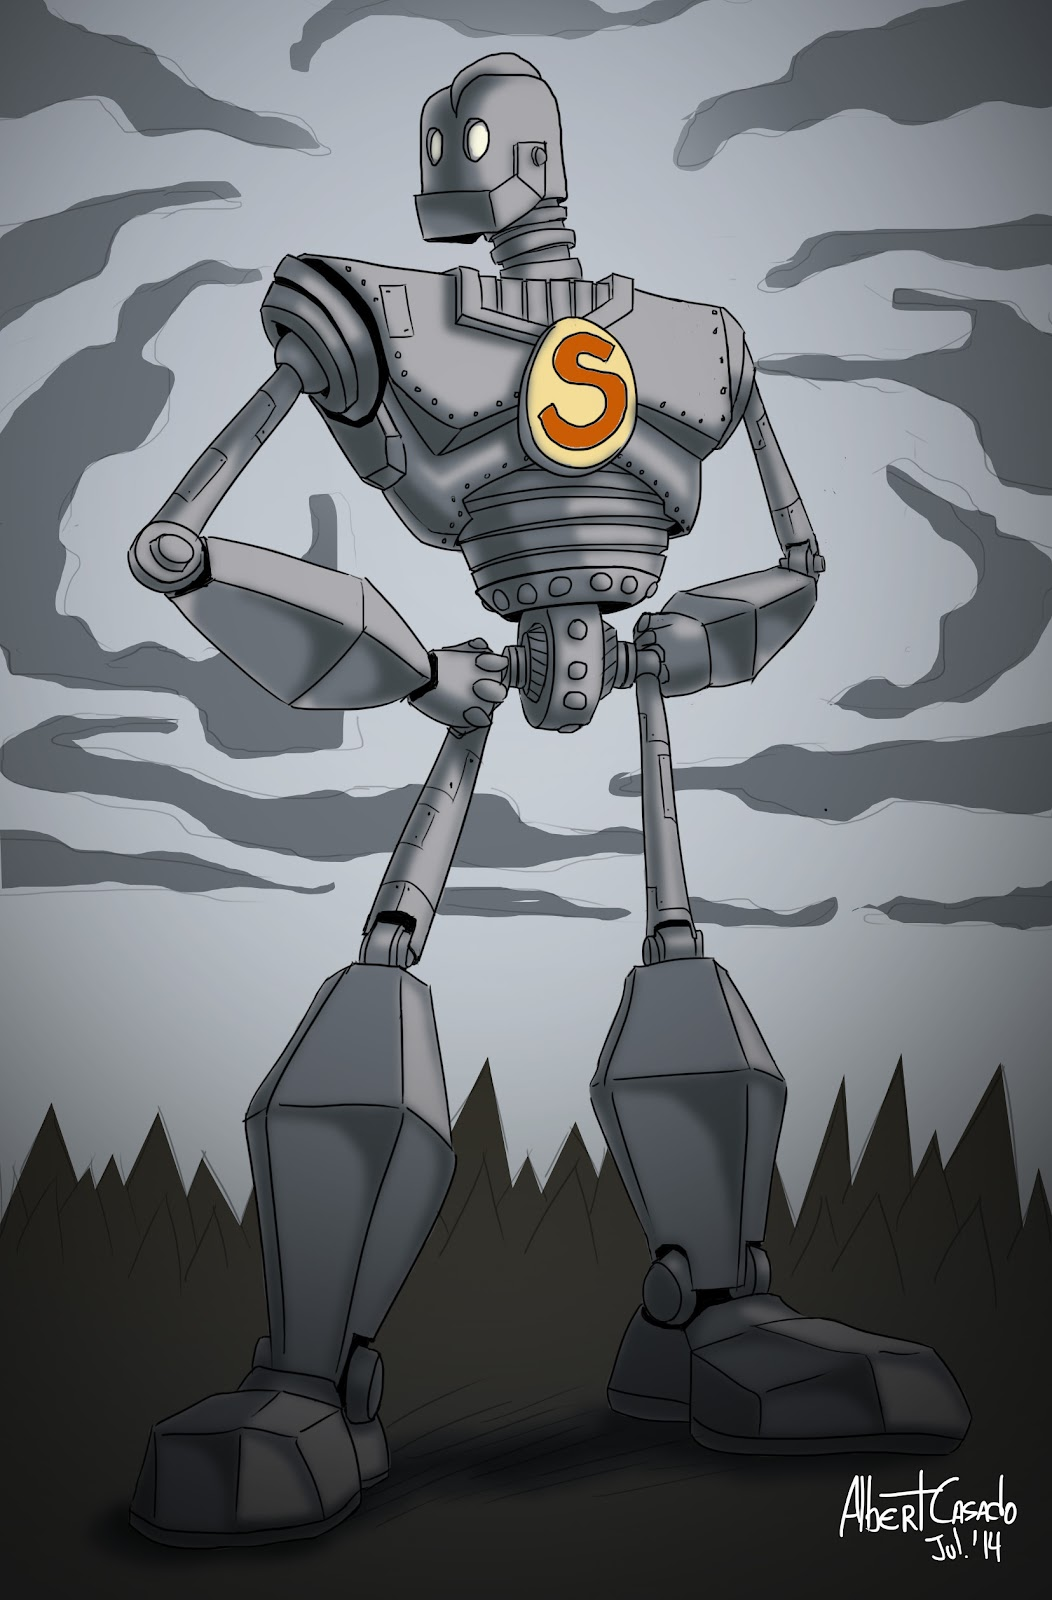 'IronGiant for Sketch_Dailies' - Albert Casado (nfok-e)